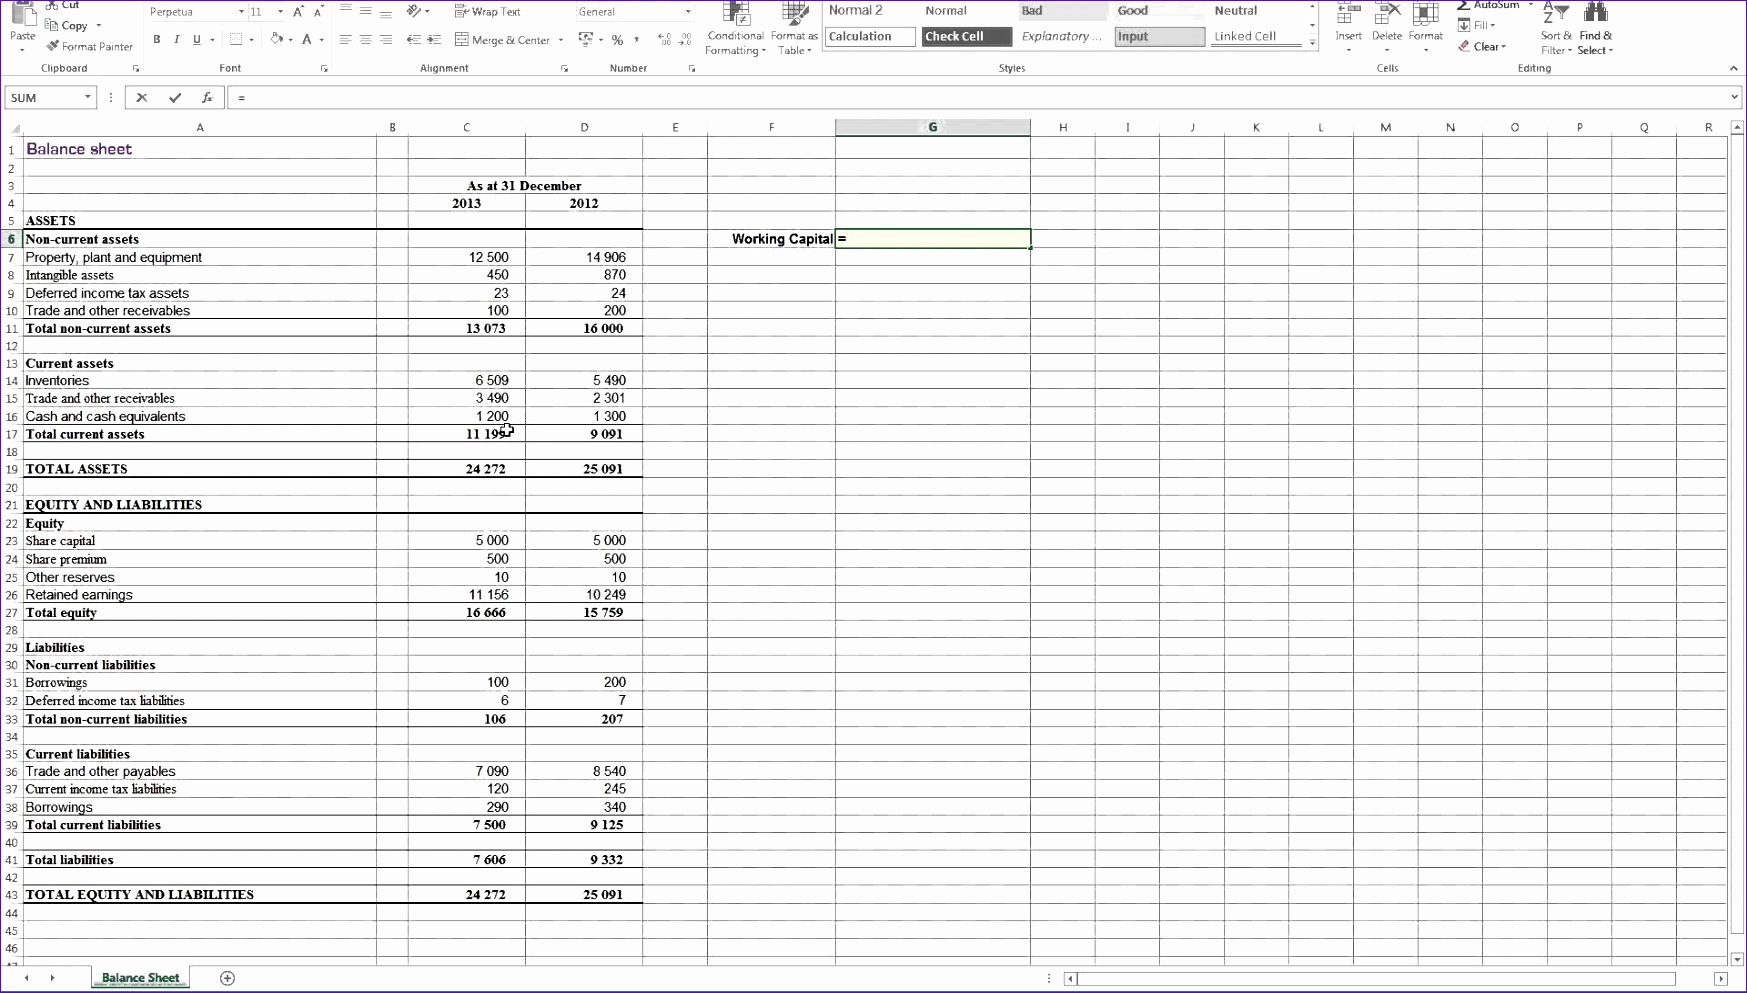 Pro forma Income Statement Template Excel Ivrsv Fresh Calculating Working Capital In Excel